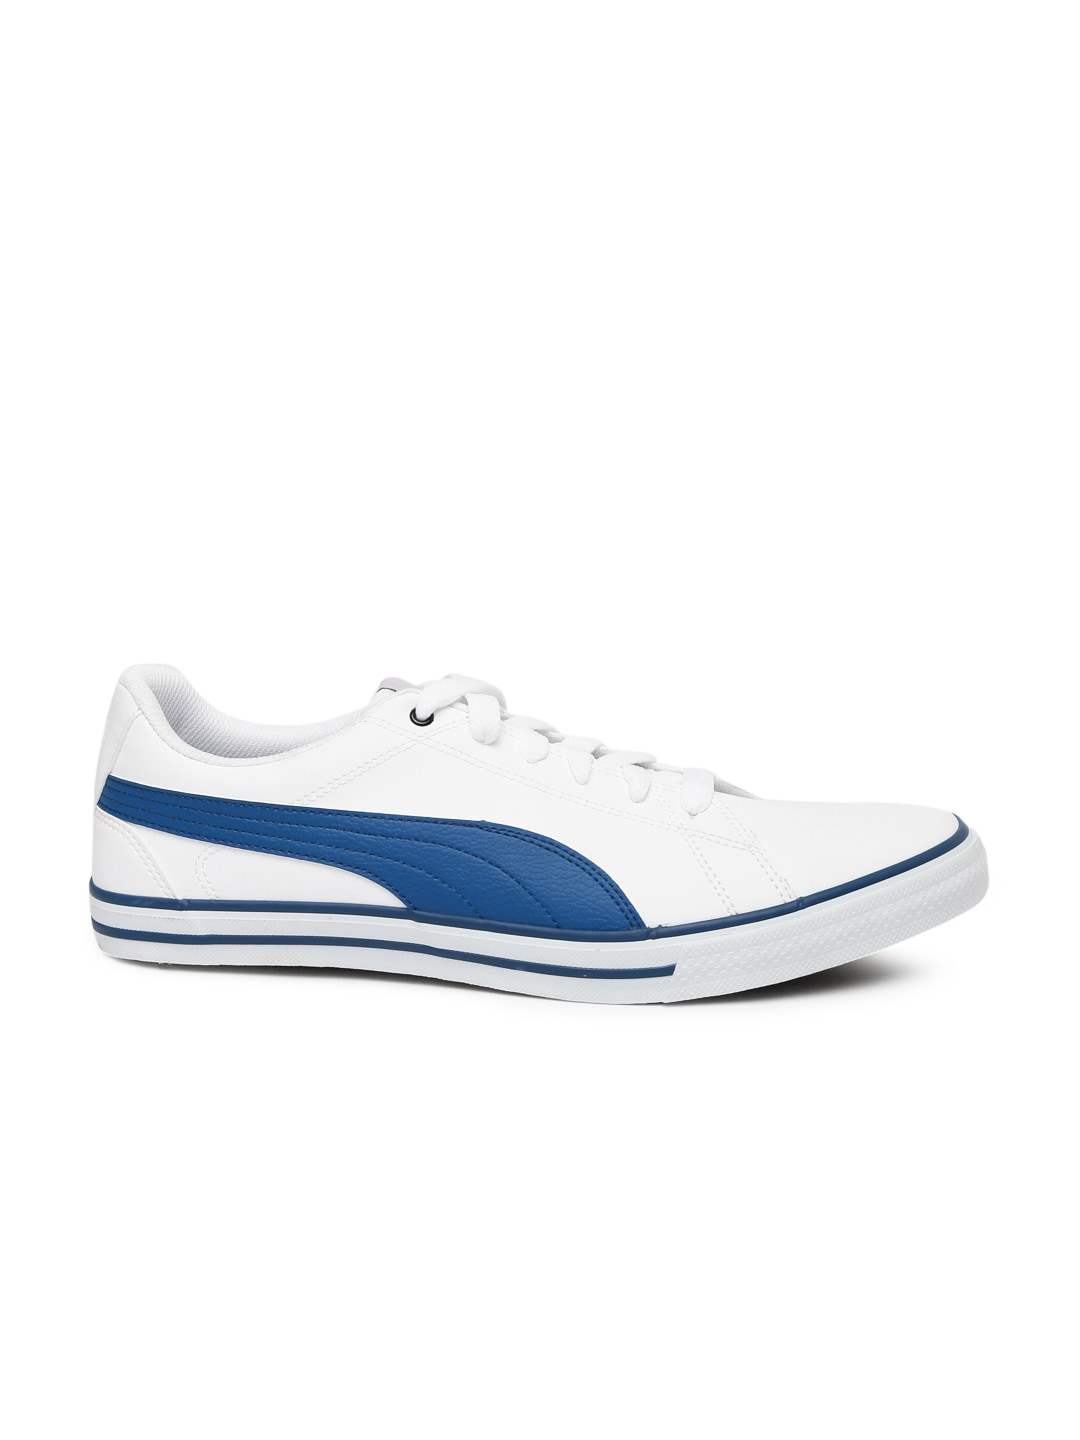 puma white shoes without laces ff545319f